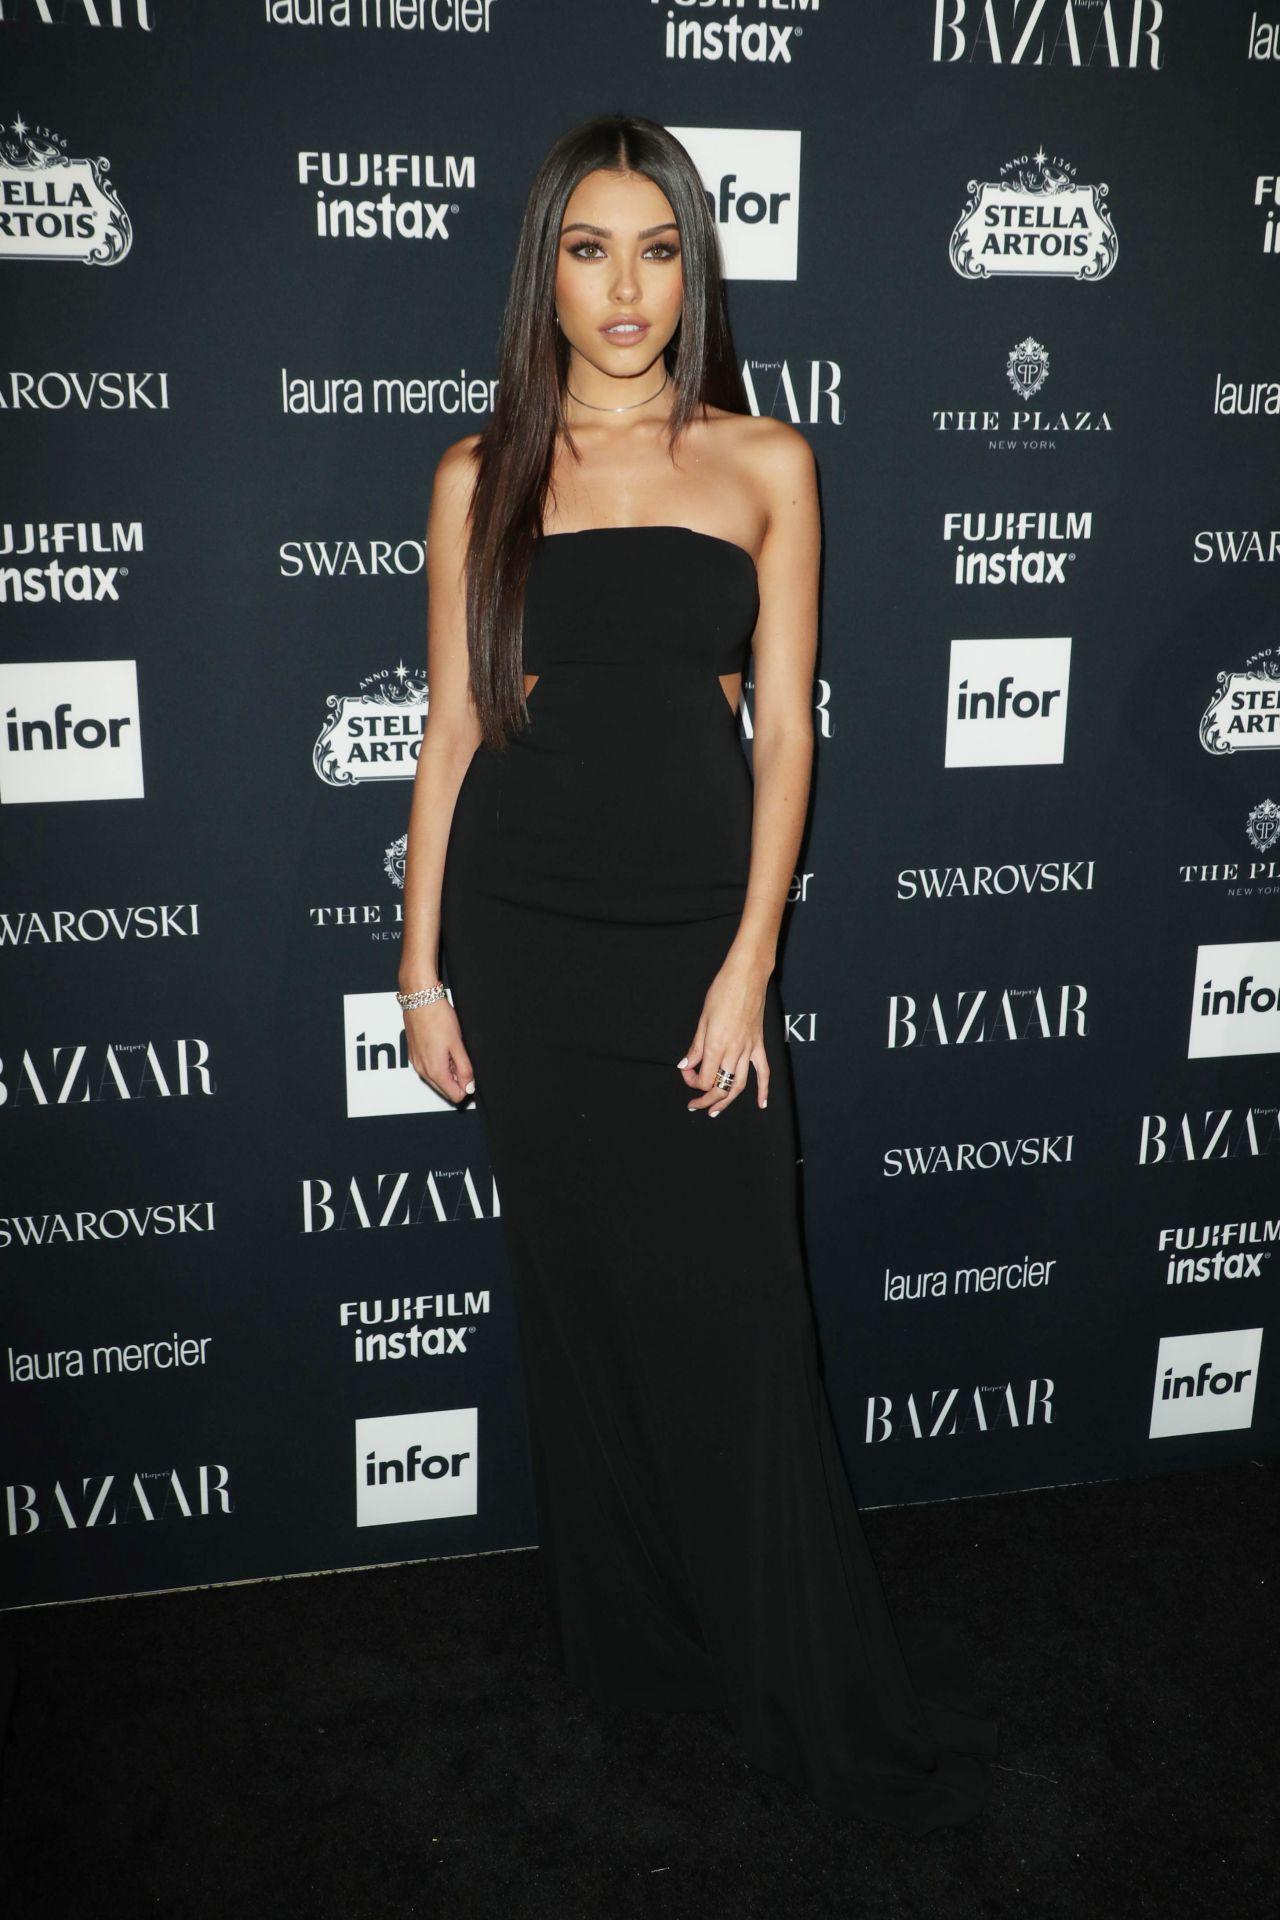 madison-beer-harper-s-bazaar-icons-party-at-nyfw-09-08-2017-1.jpg